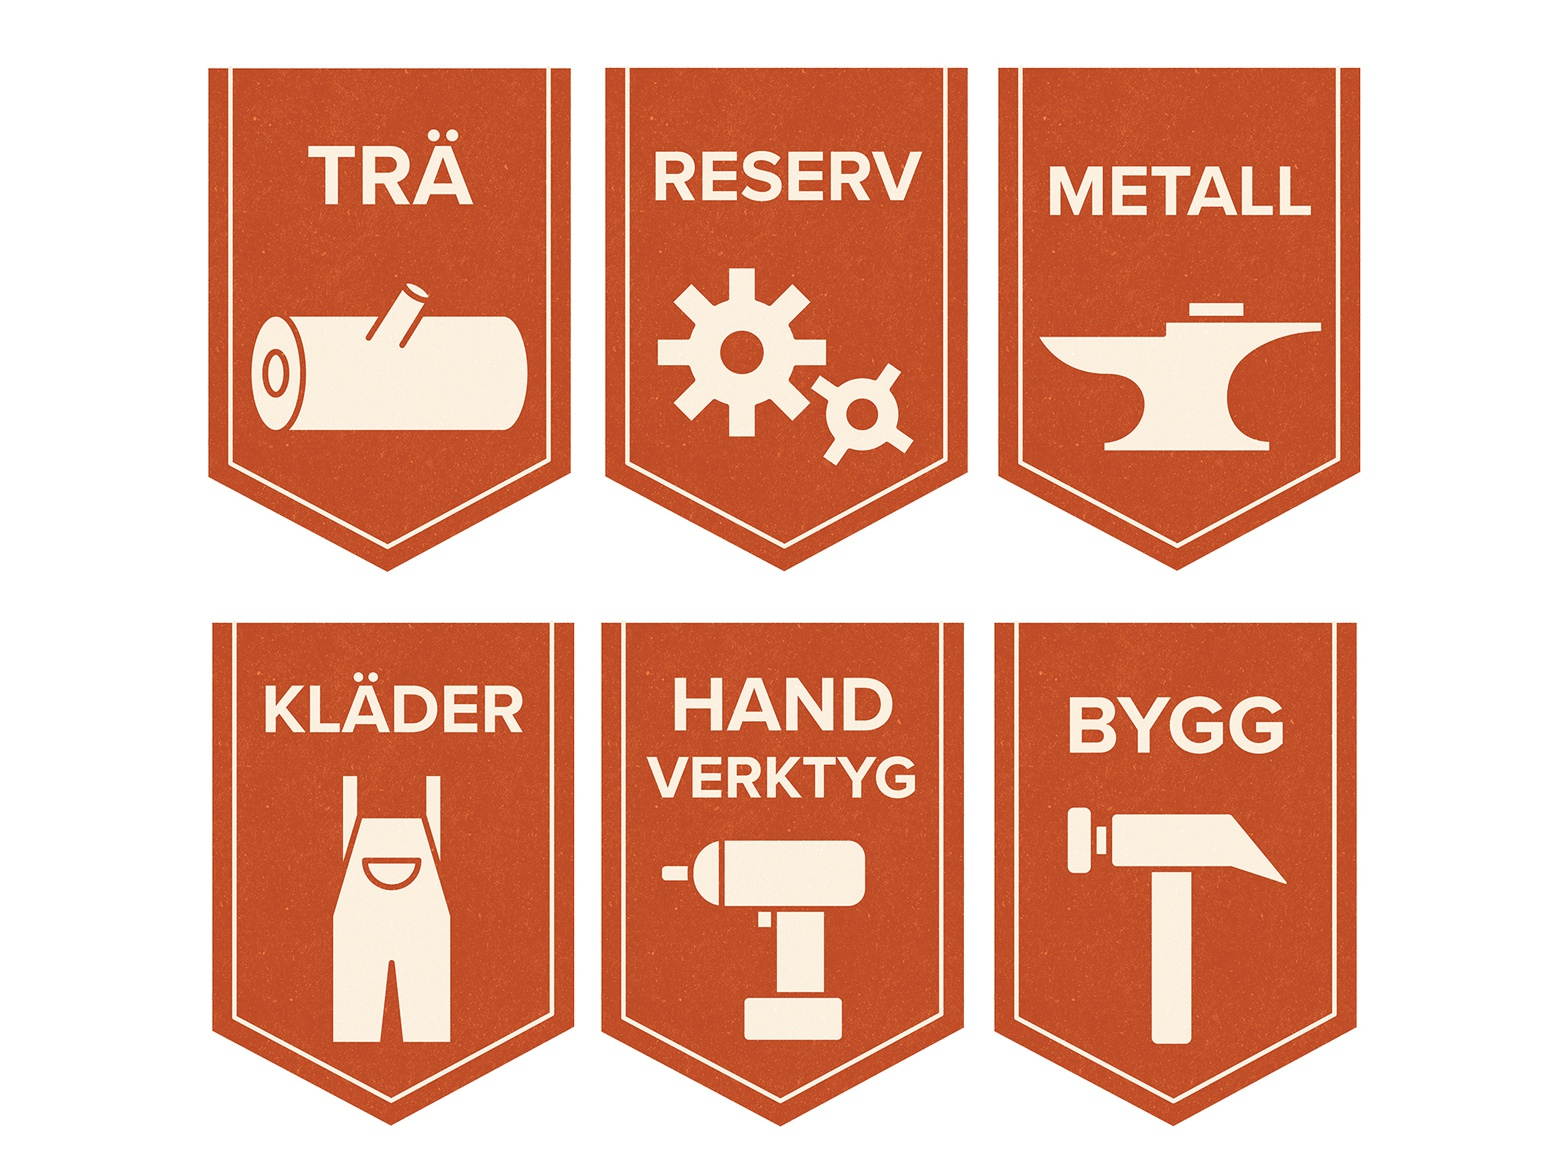 Handyman Tools - Category Tags/Icons ui icon logo visual  identity design branding flat illustration vector illustration